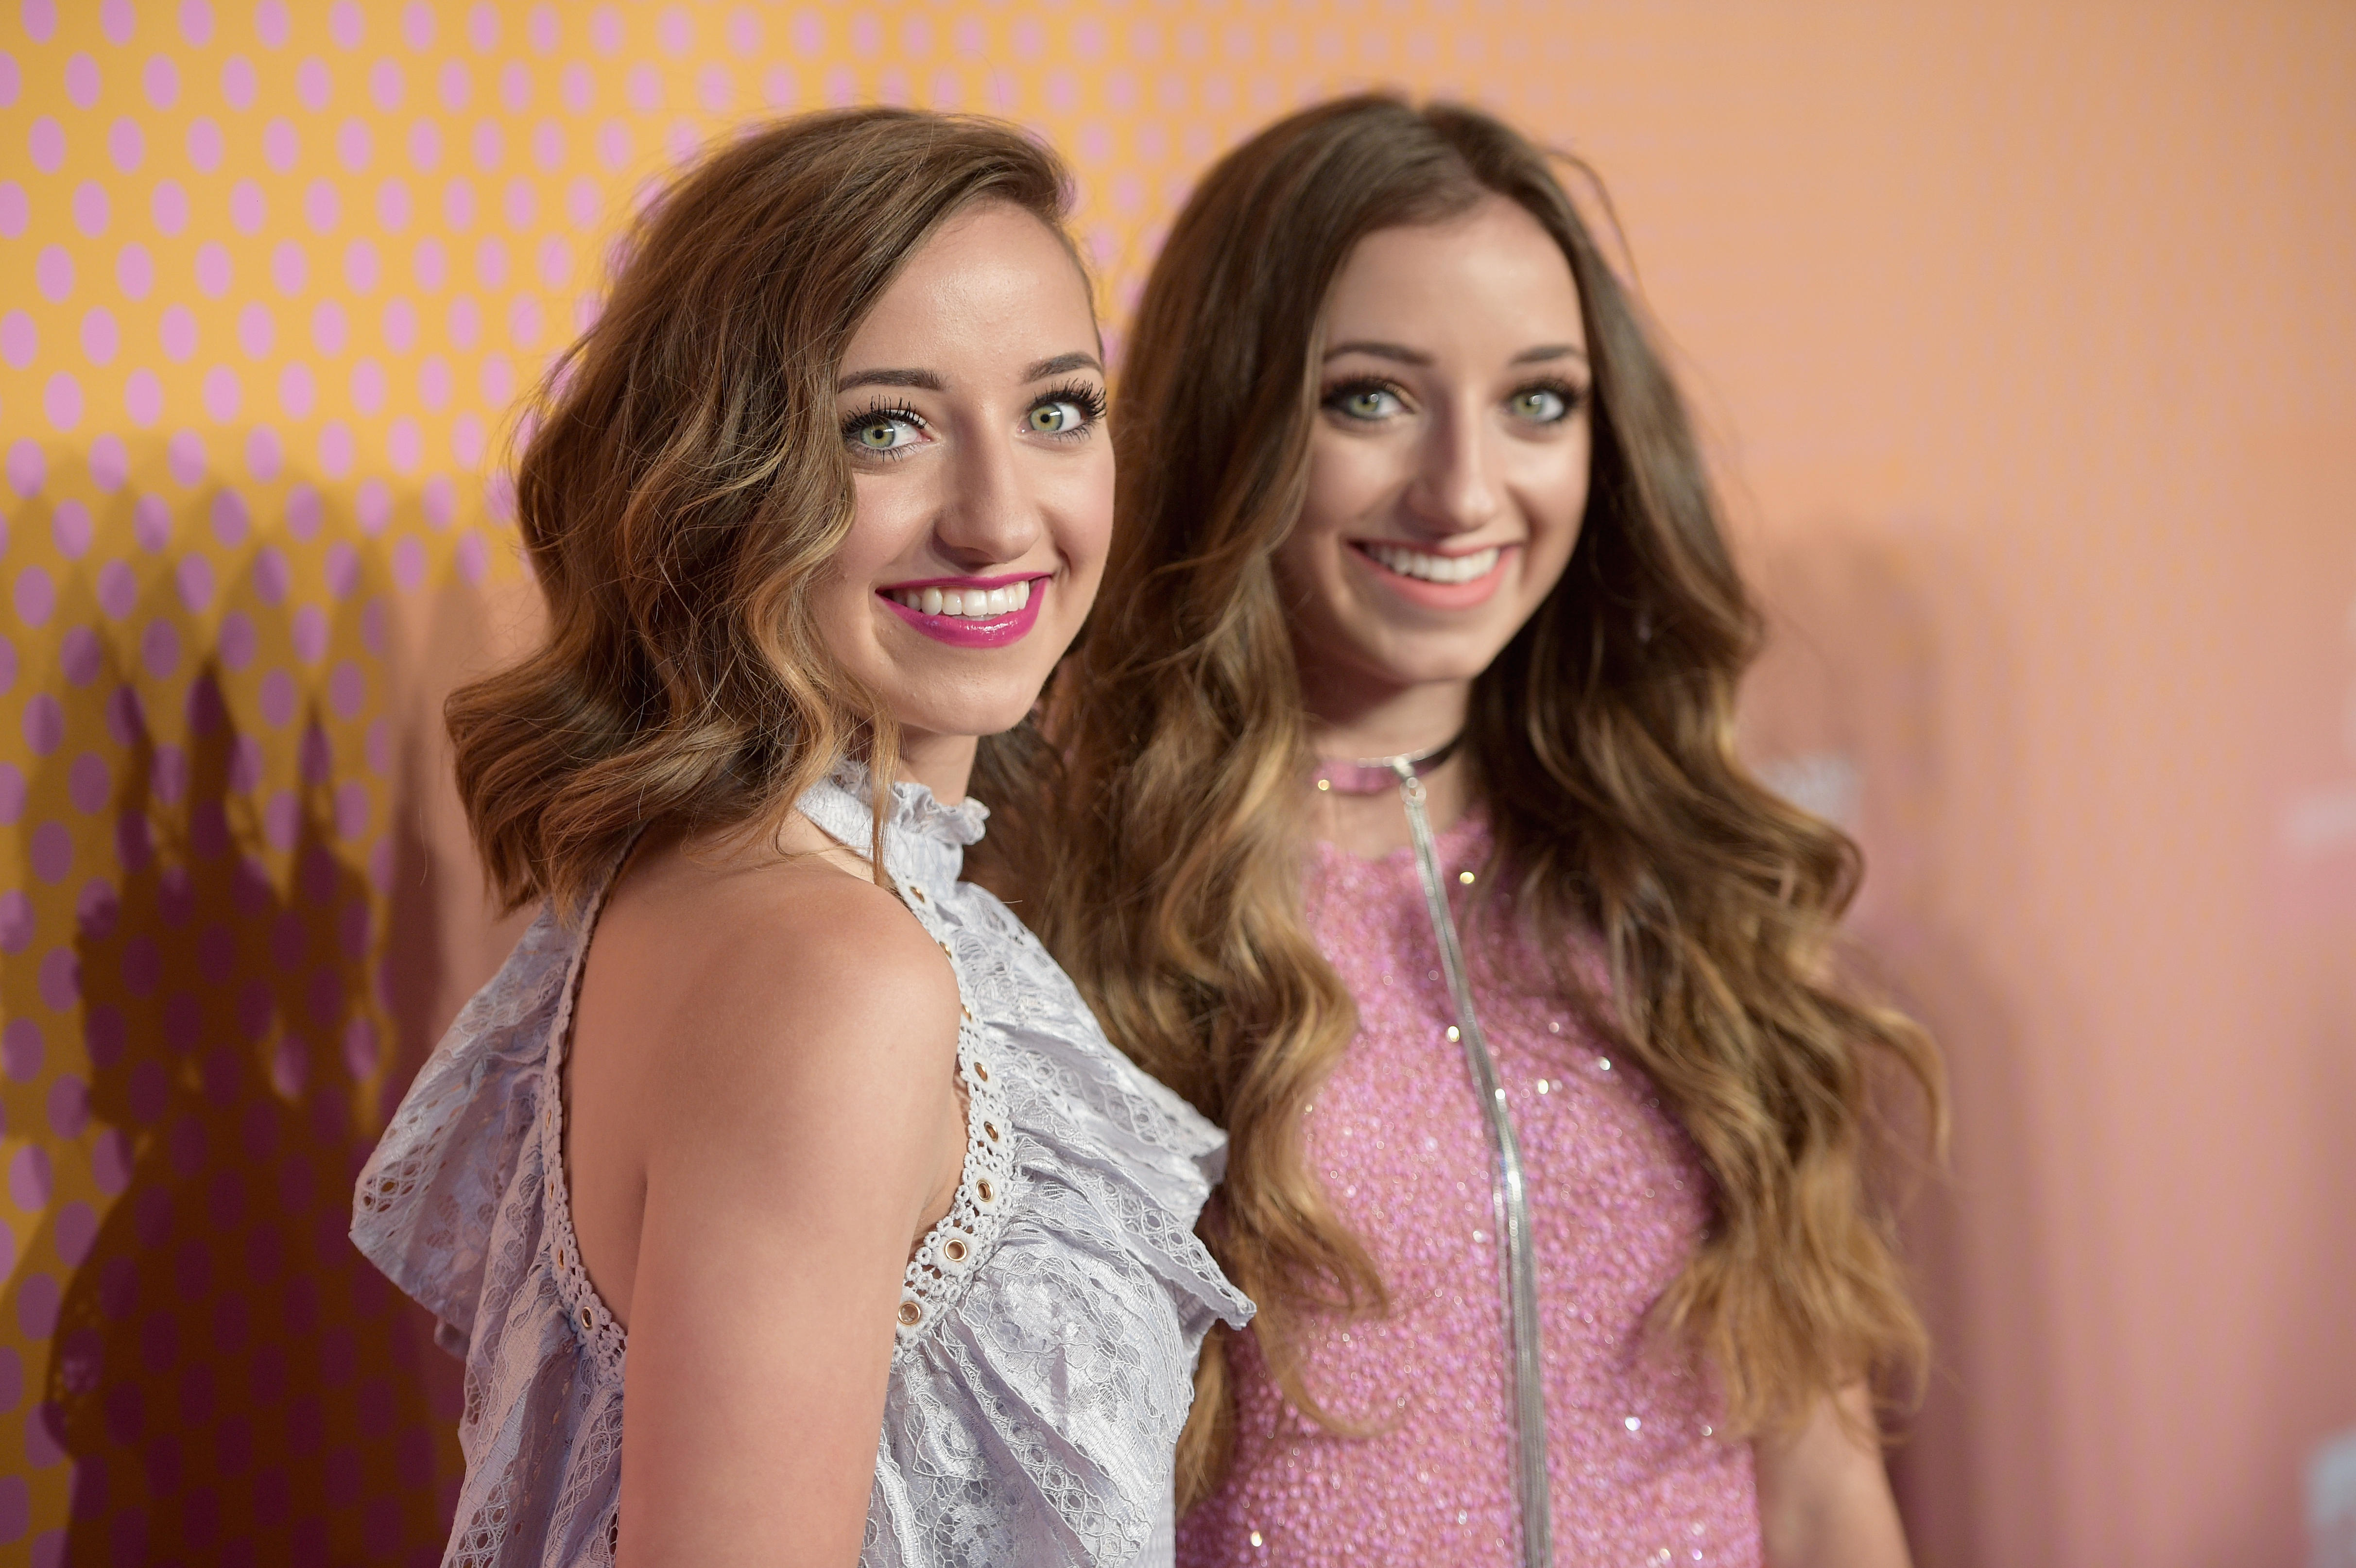 Bailey and Brooklyn McKnight branched off into their own teen-coming-of-age vlog channel in 2013